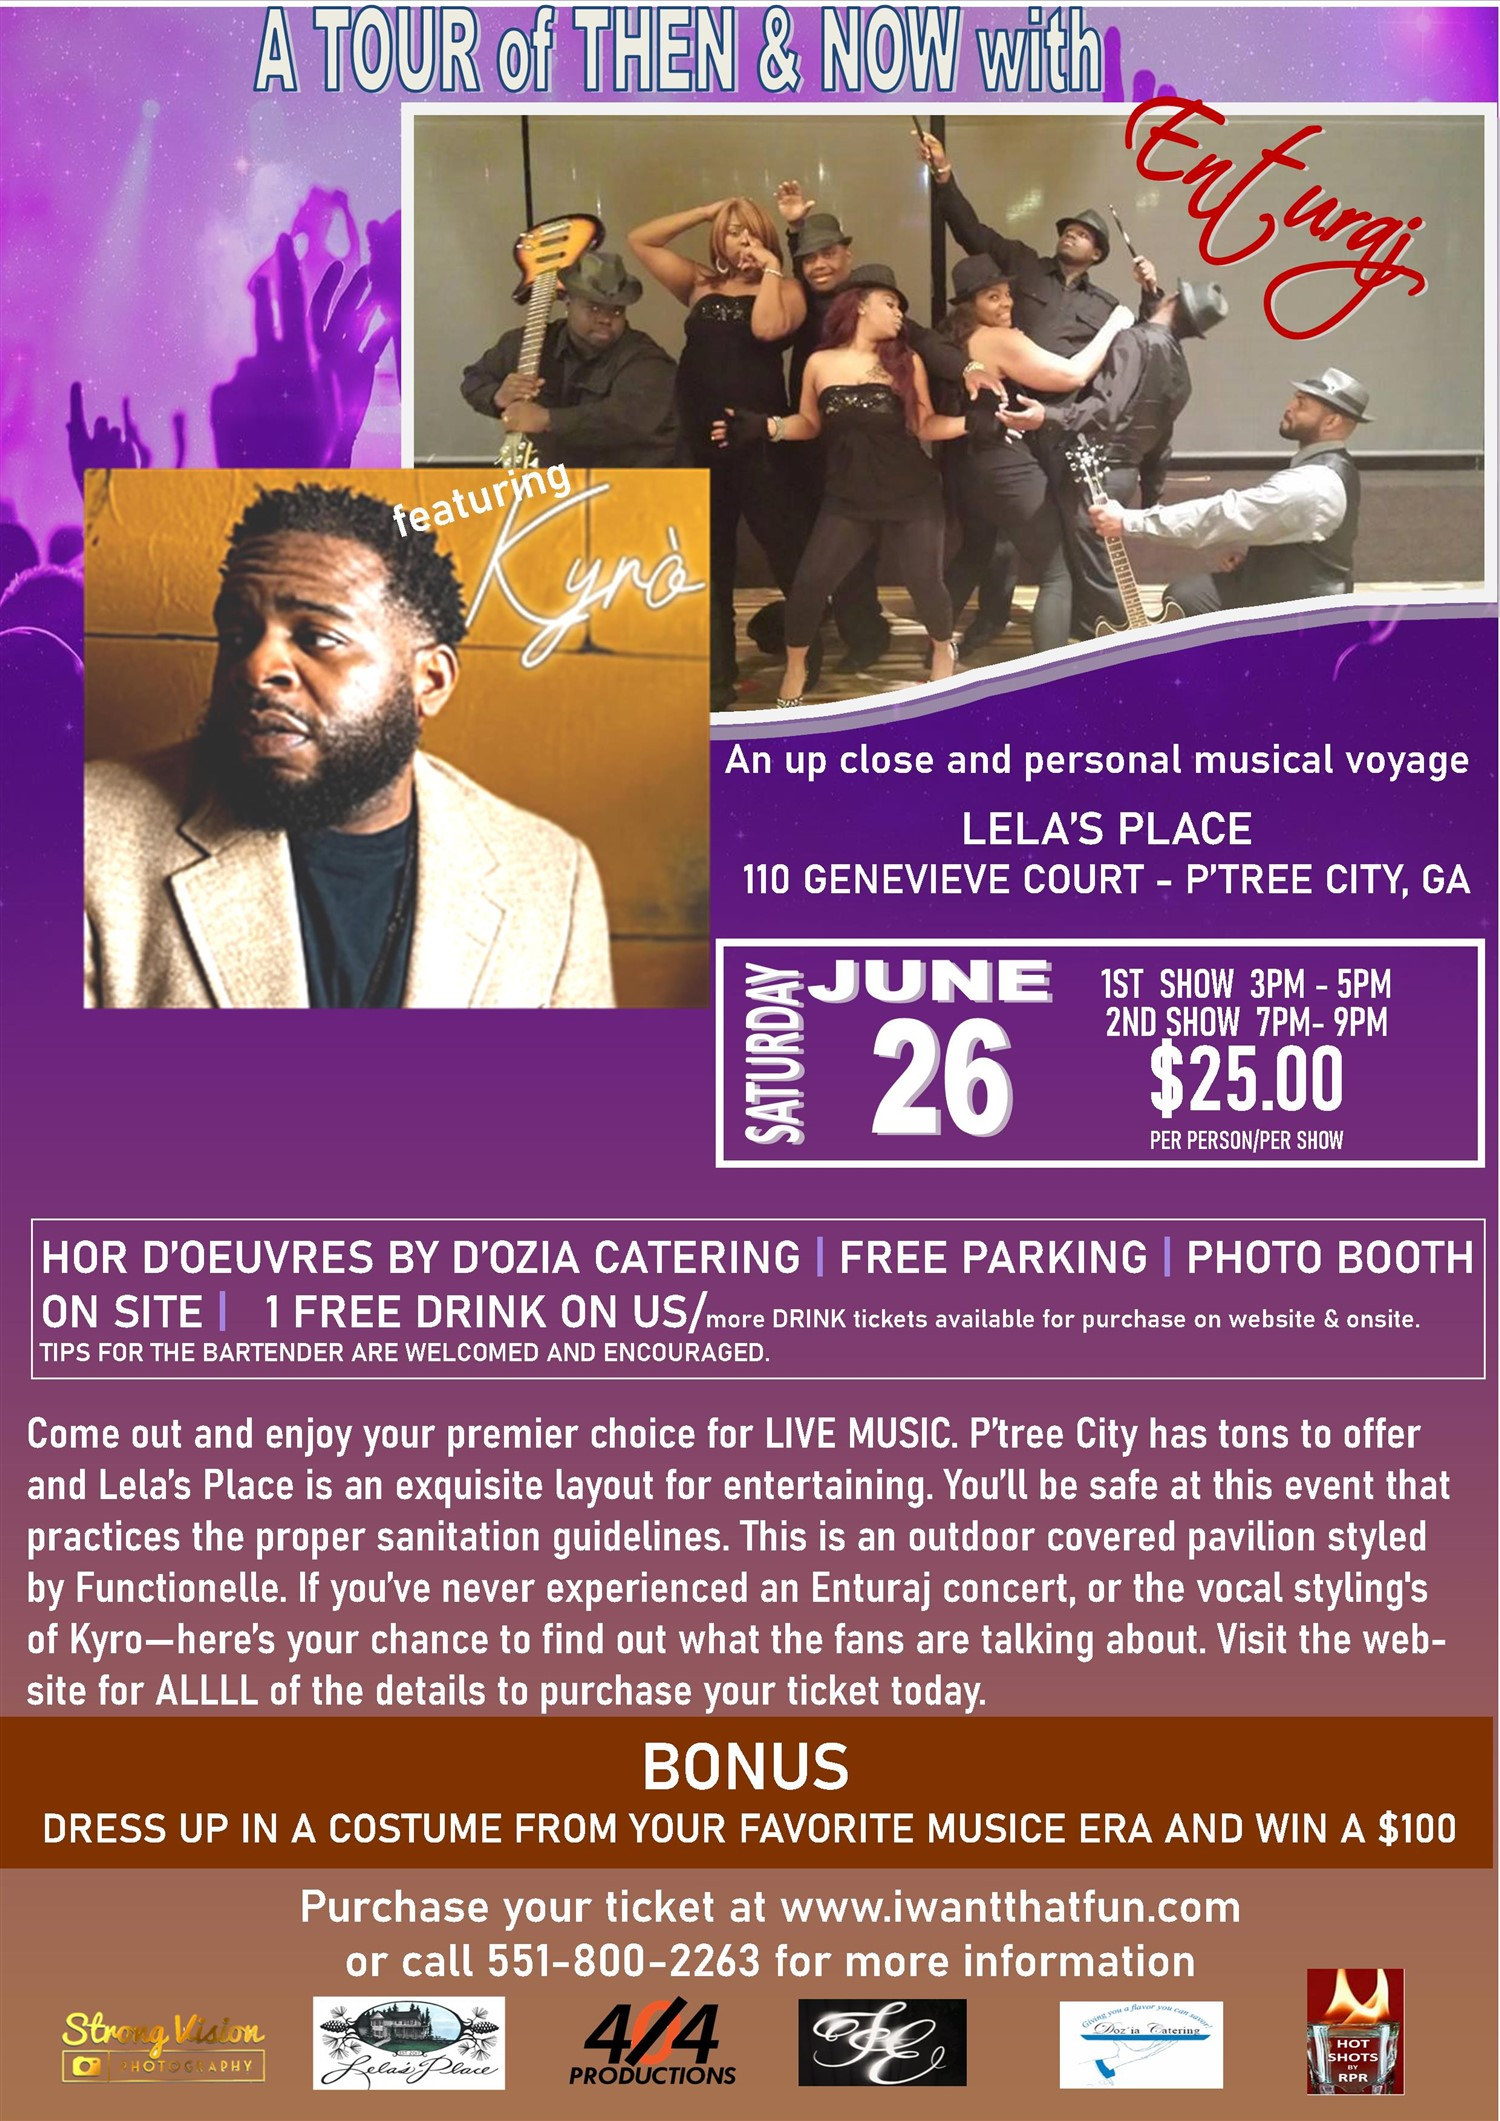 A Tour of Then and Now with Enturaj an up close and personal musical voyage on Jun 26, 15:00@Lela's Place - Buy tickets and Get information on iwantthatfun